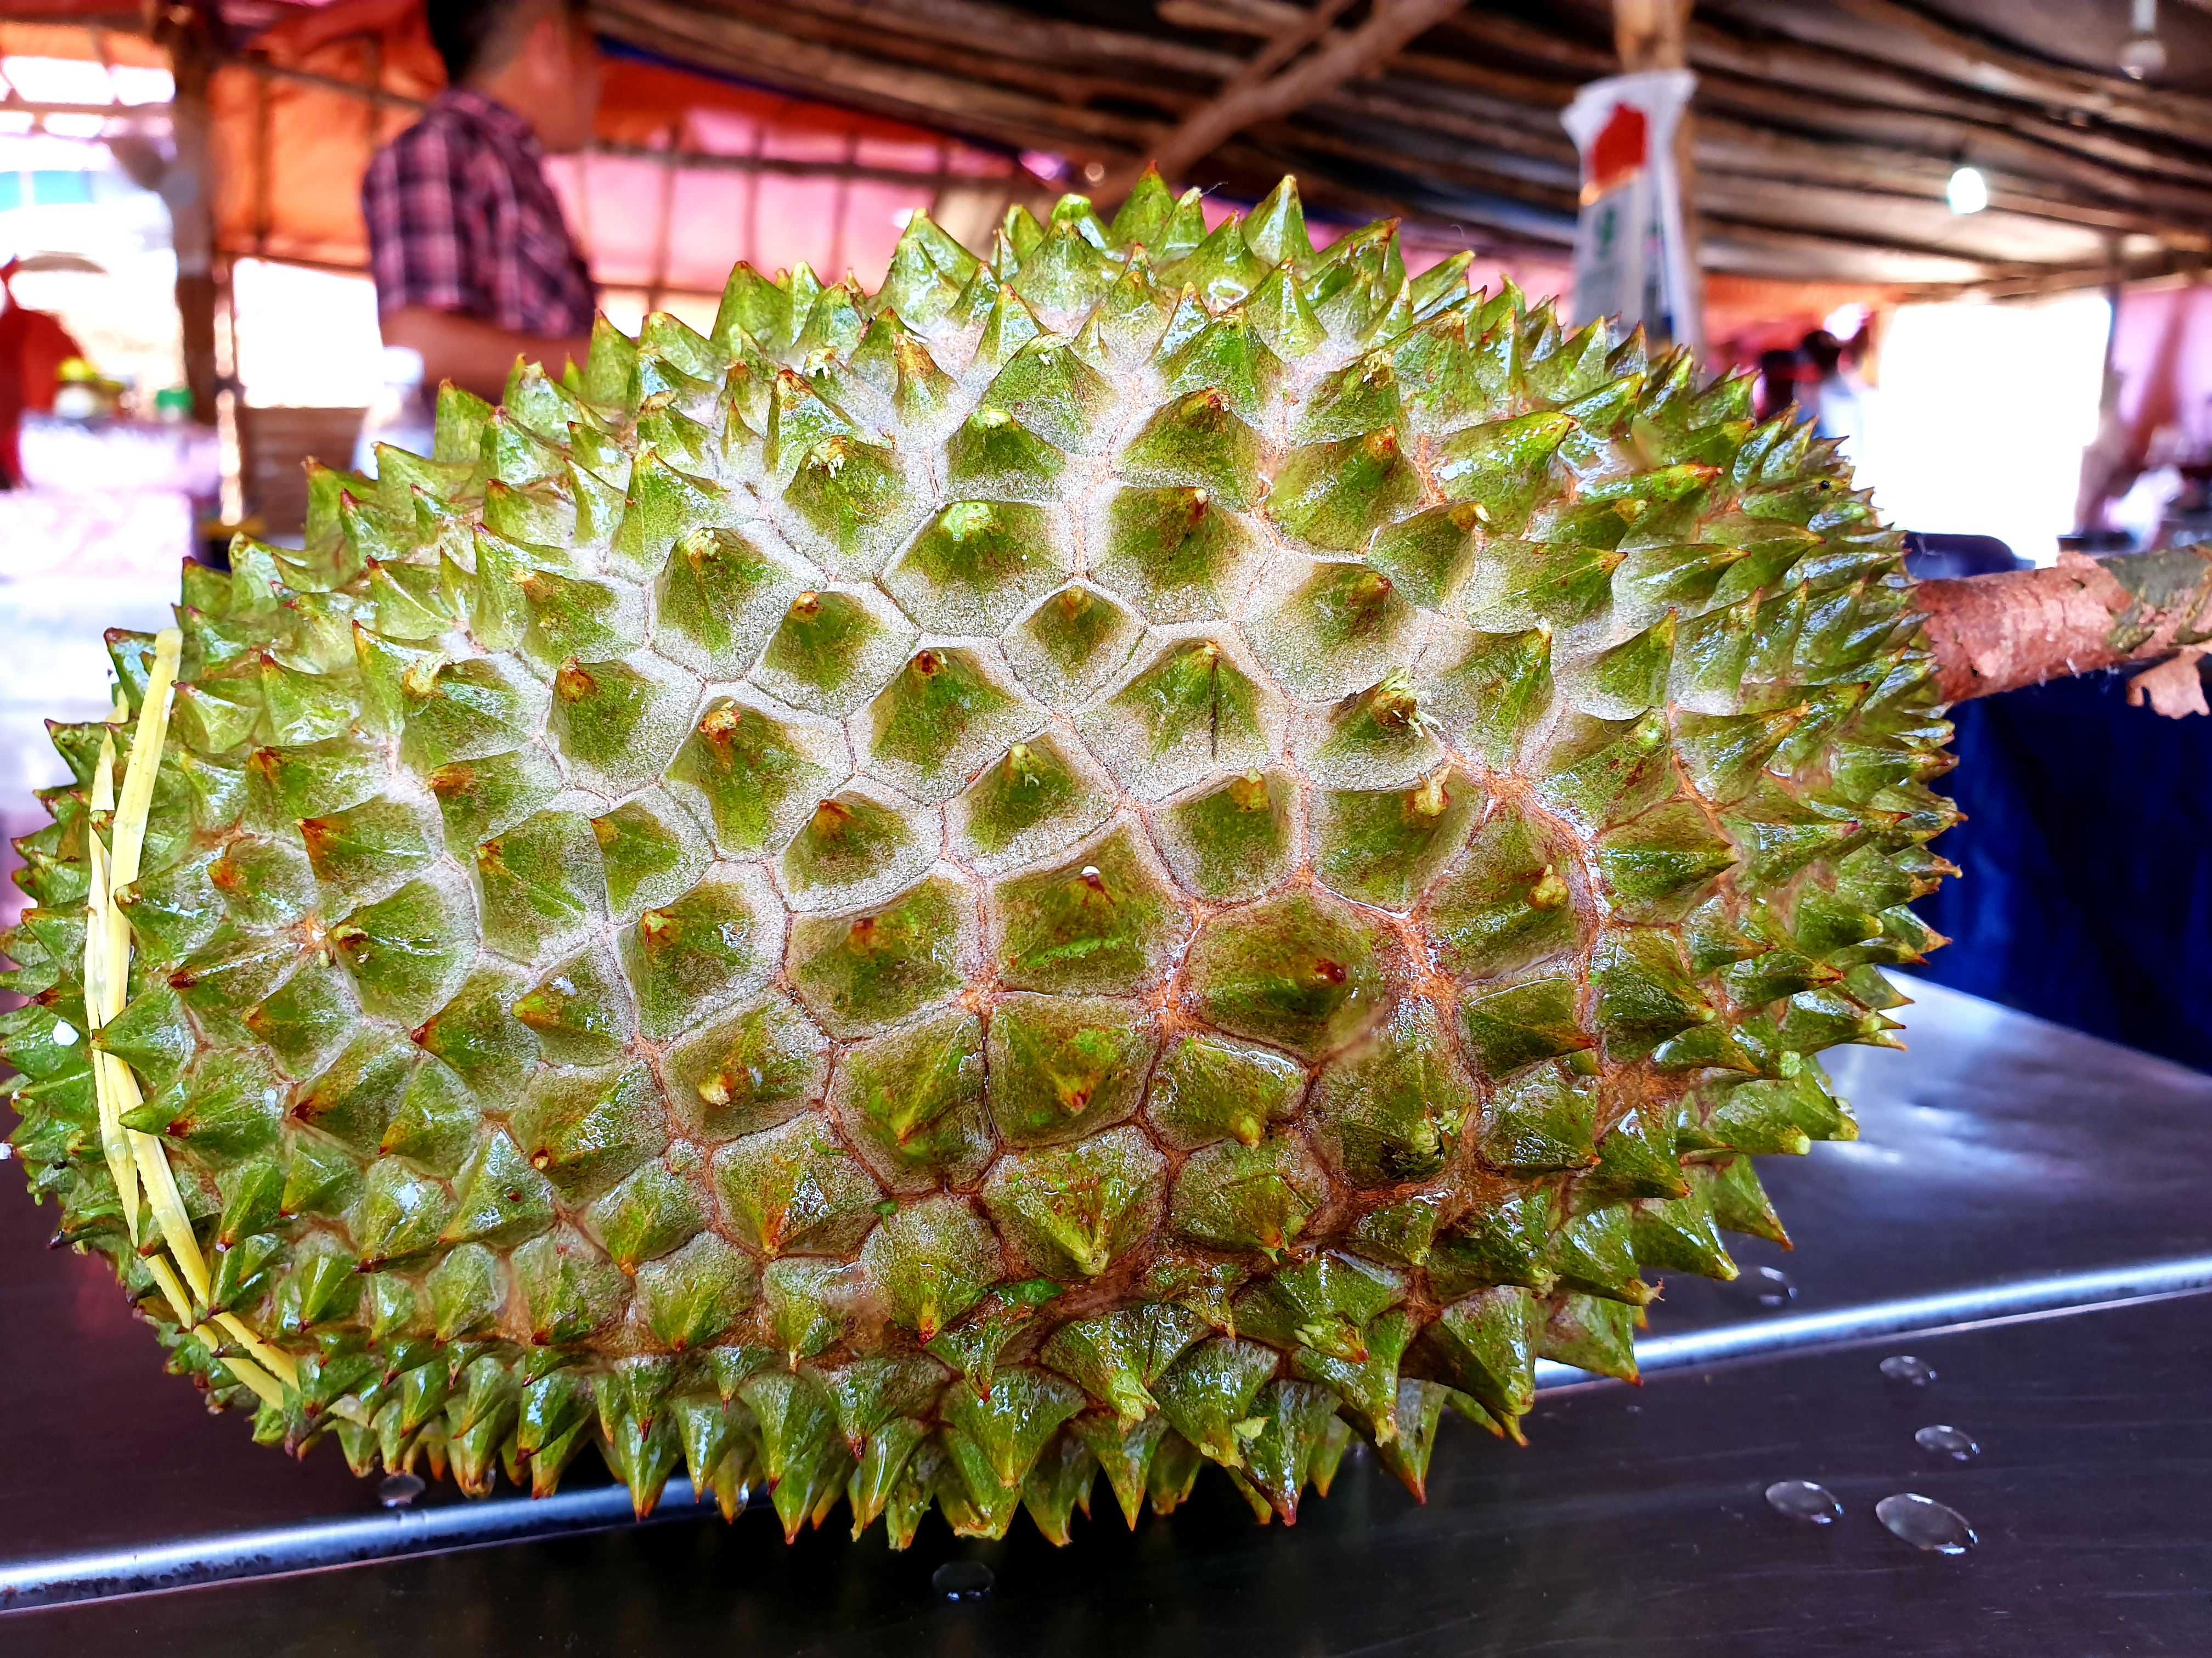 A Malaysian Musang King durian, much sought after by consumers in China. (Michael Sullivan for NPR)